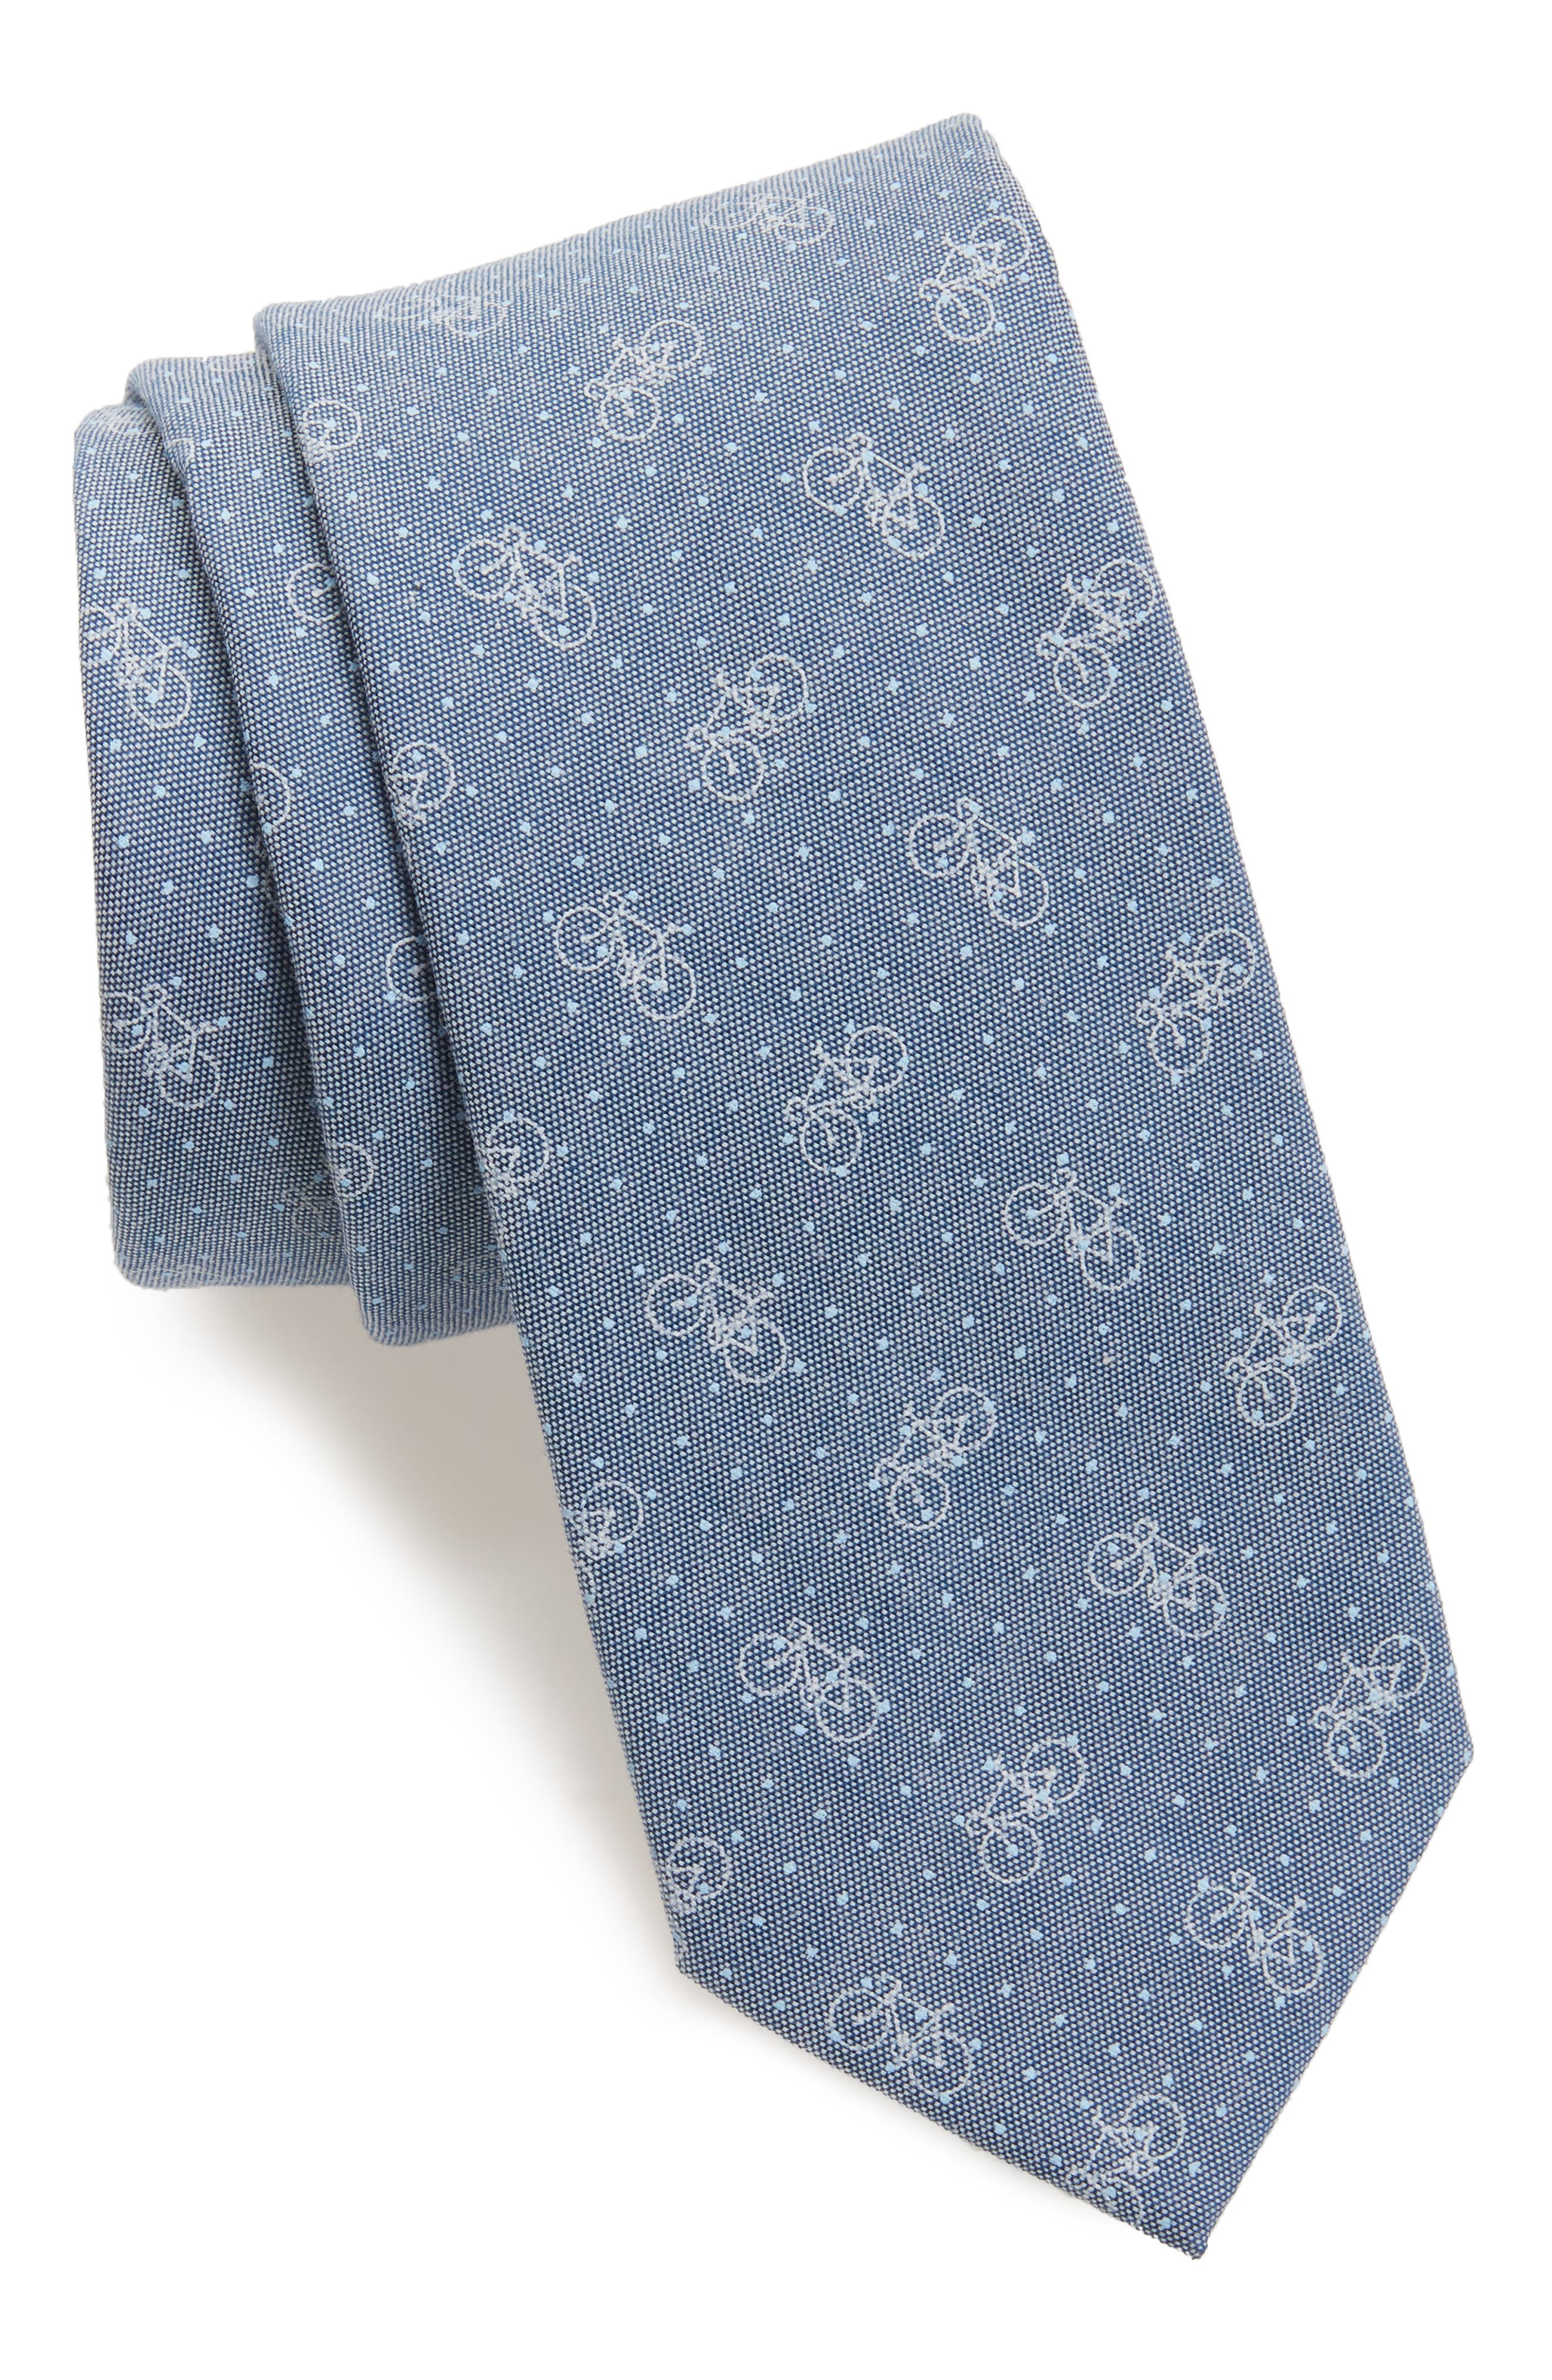 Bicycle & Dot Cotton Tie,                             Main thumbnail 1, color,                             Blue